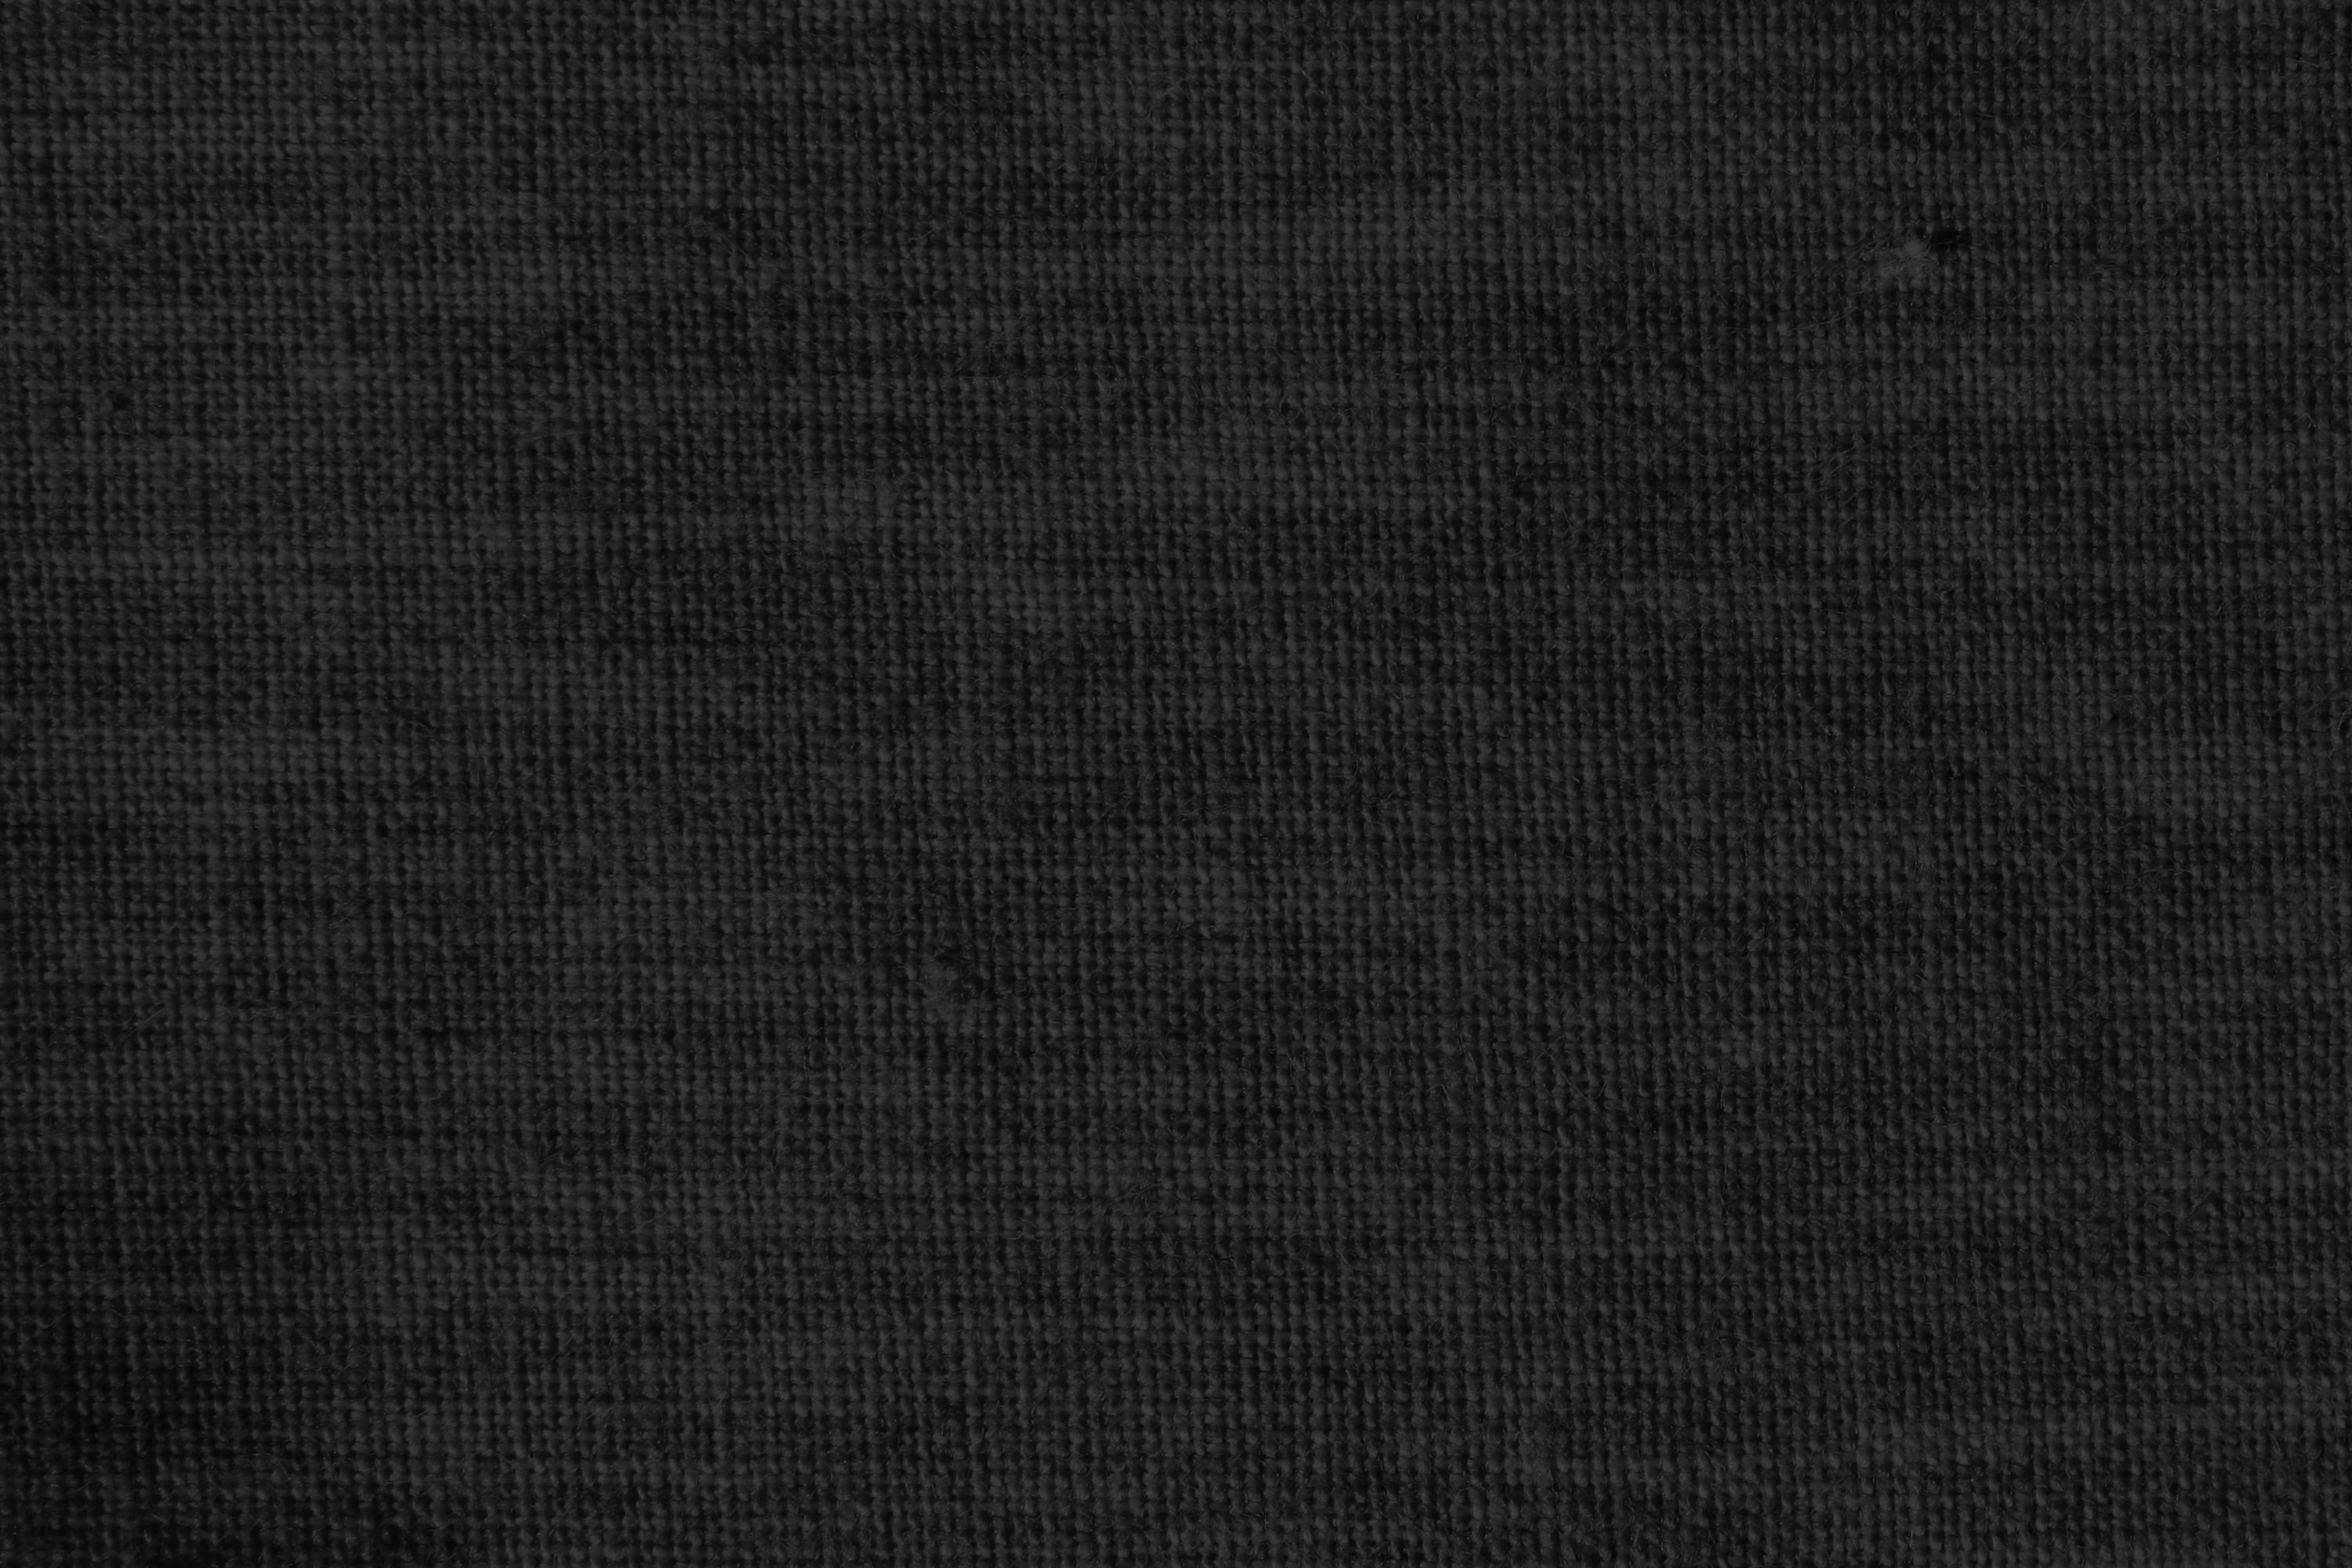 Black Woven Fabric Close Up Texture Picture Photograph Photos 3000x2000